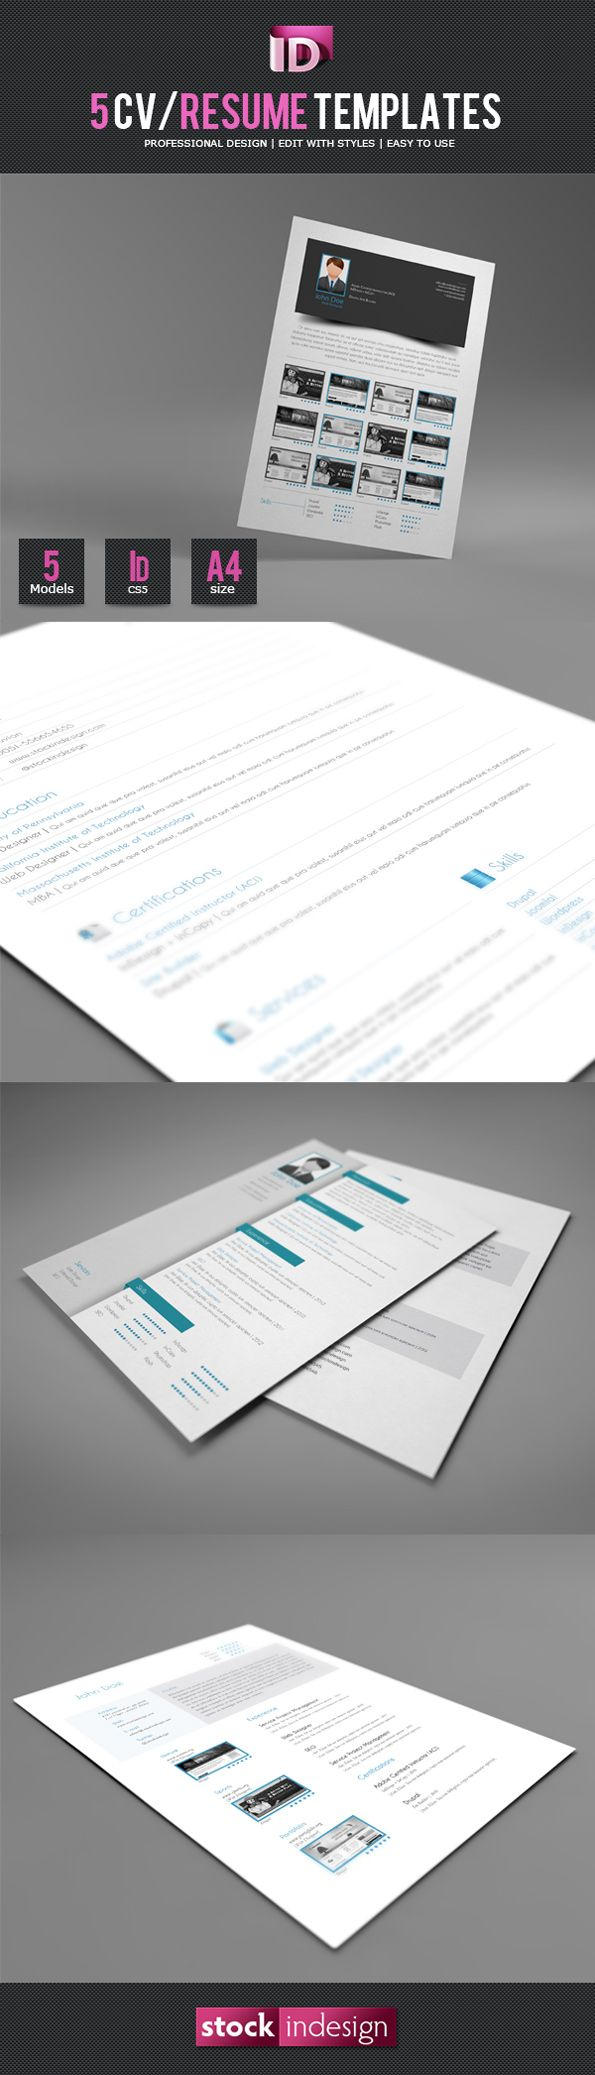 These free indesign magazine templates fulfill the layout functions you need to deliver your editorial content in the best way possible. Free Cv Resume Indesign Templates Teaching Graphic Design Indesign Templates Adobe Design